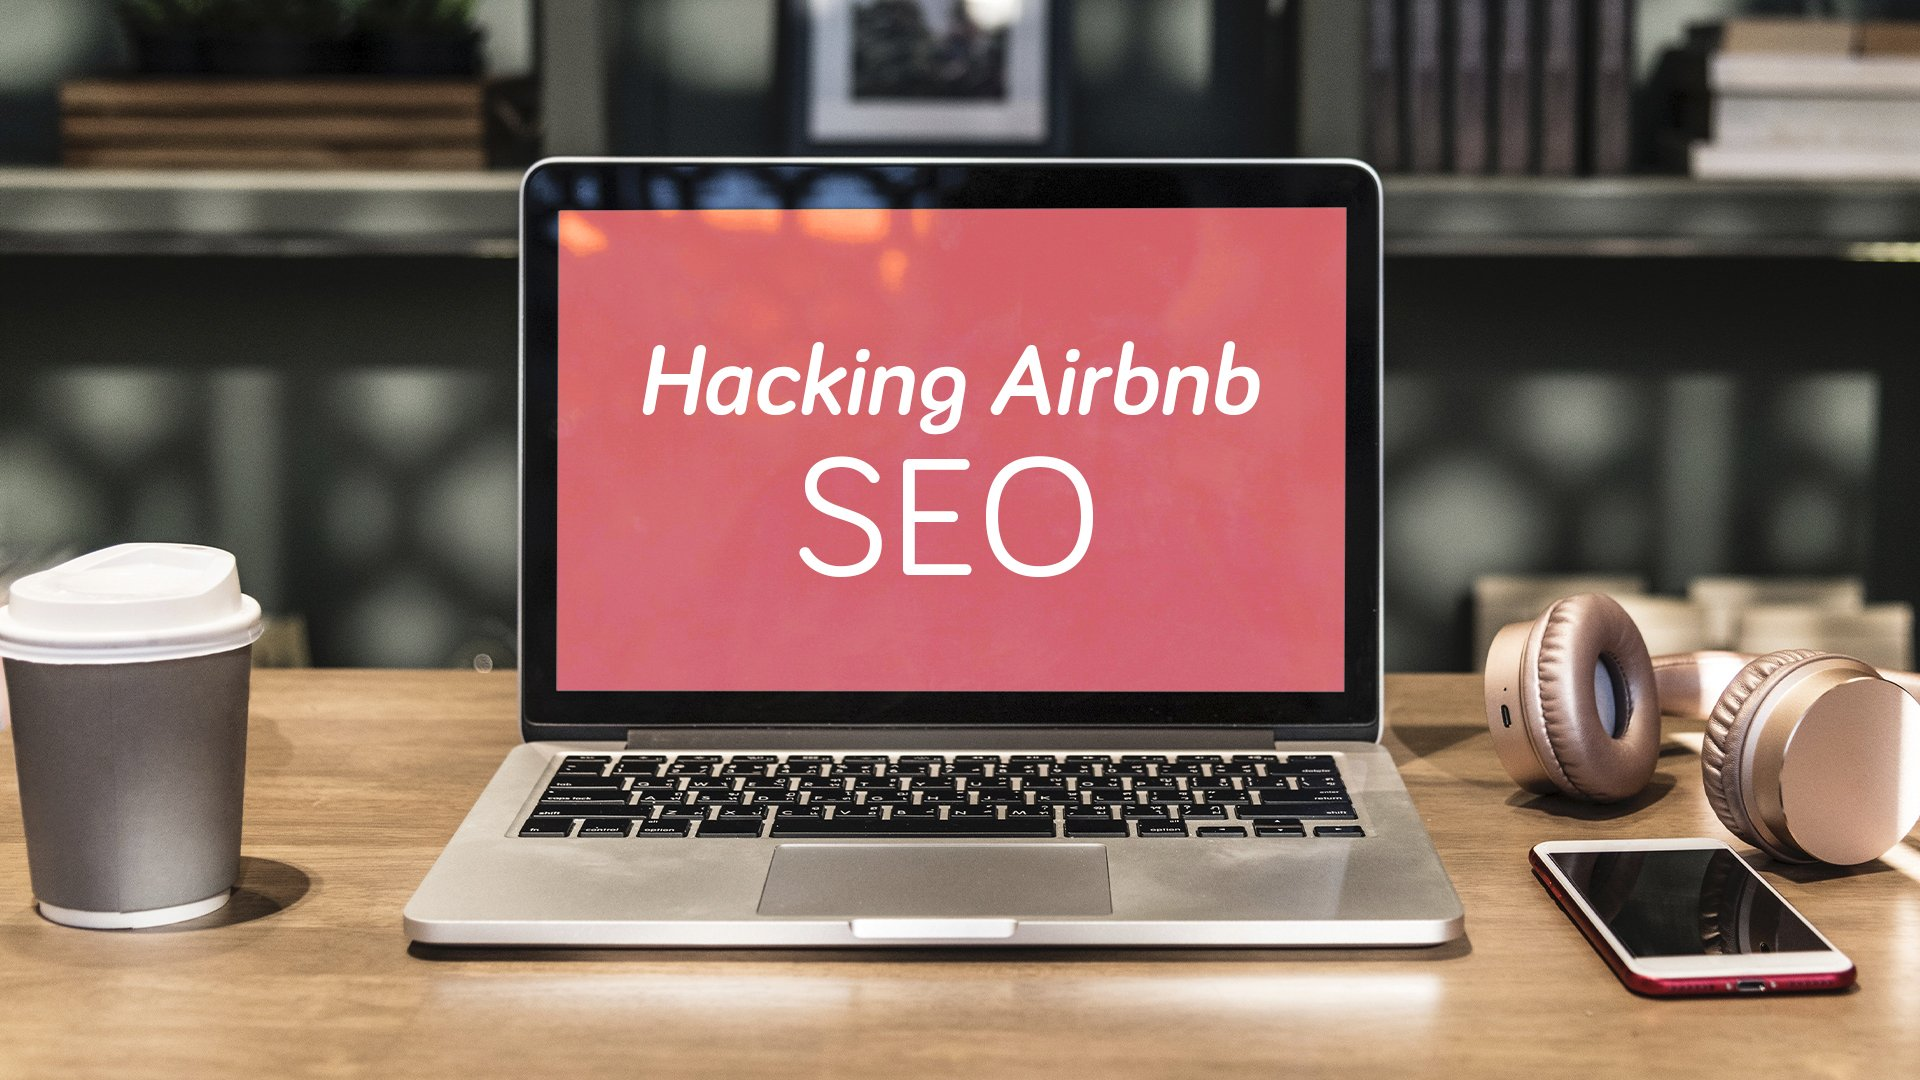 Airbnb SEO - 8 Proven Hacks to Convert More Airbnb Bookings